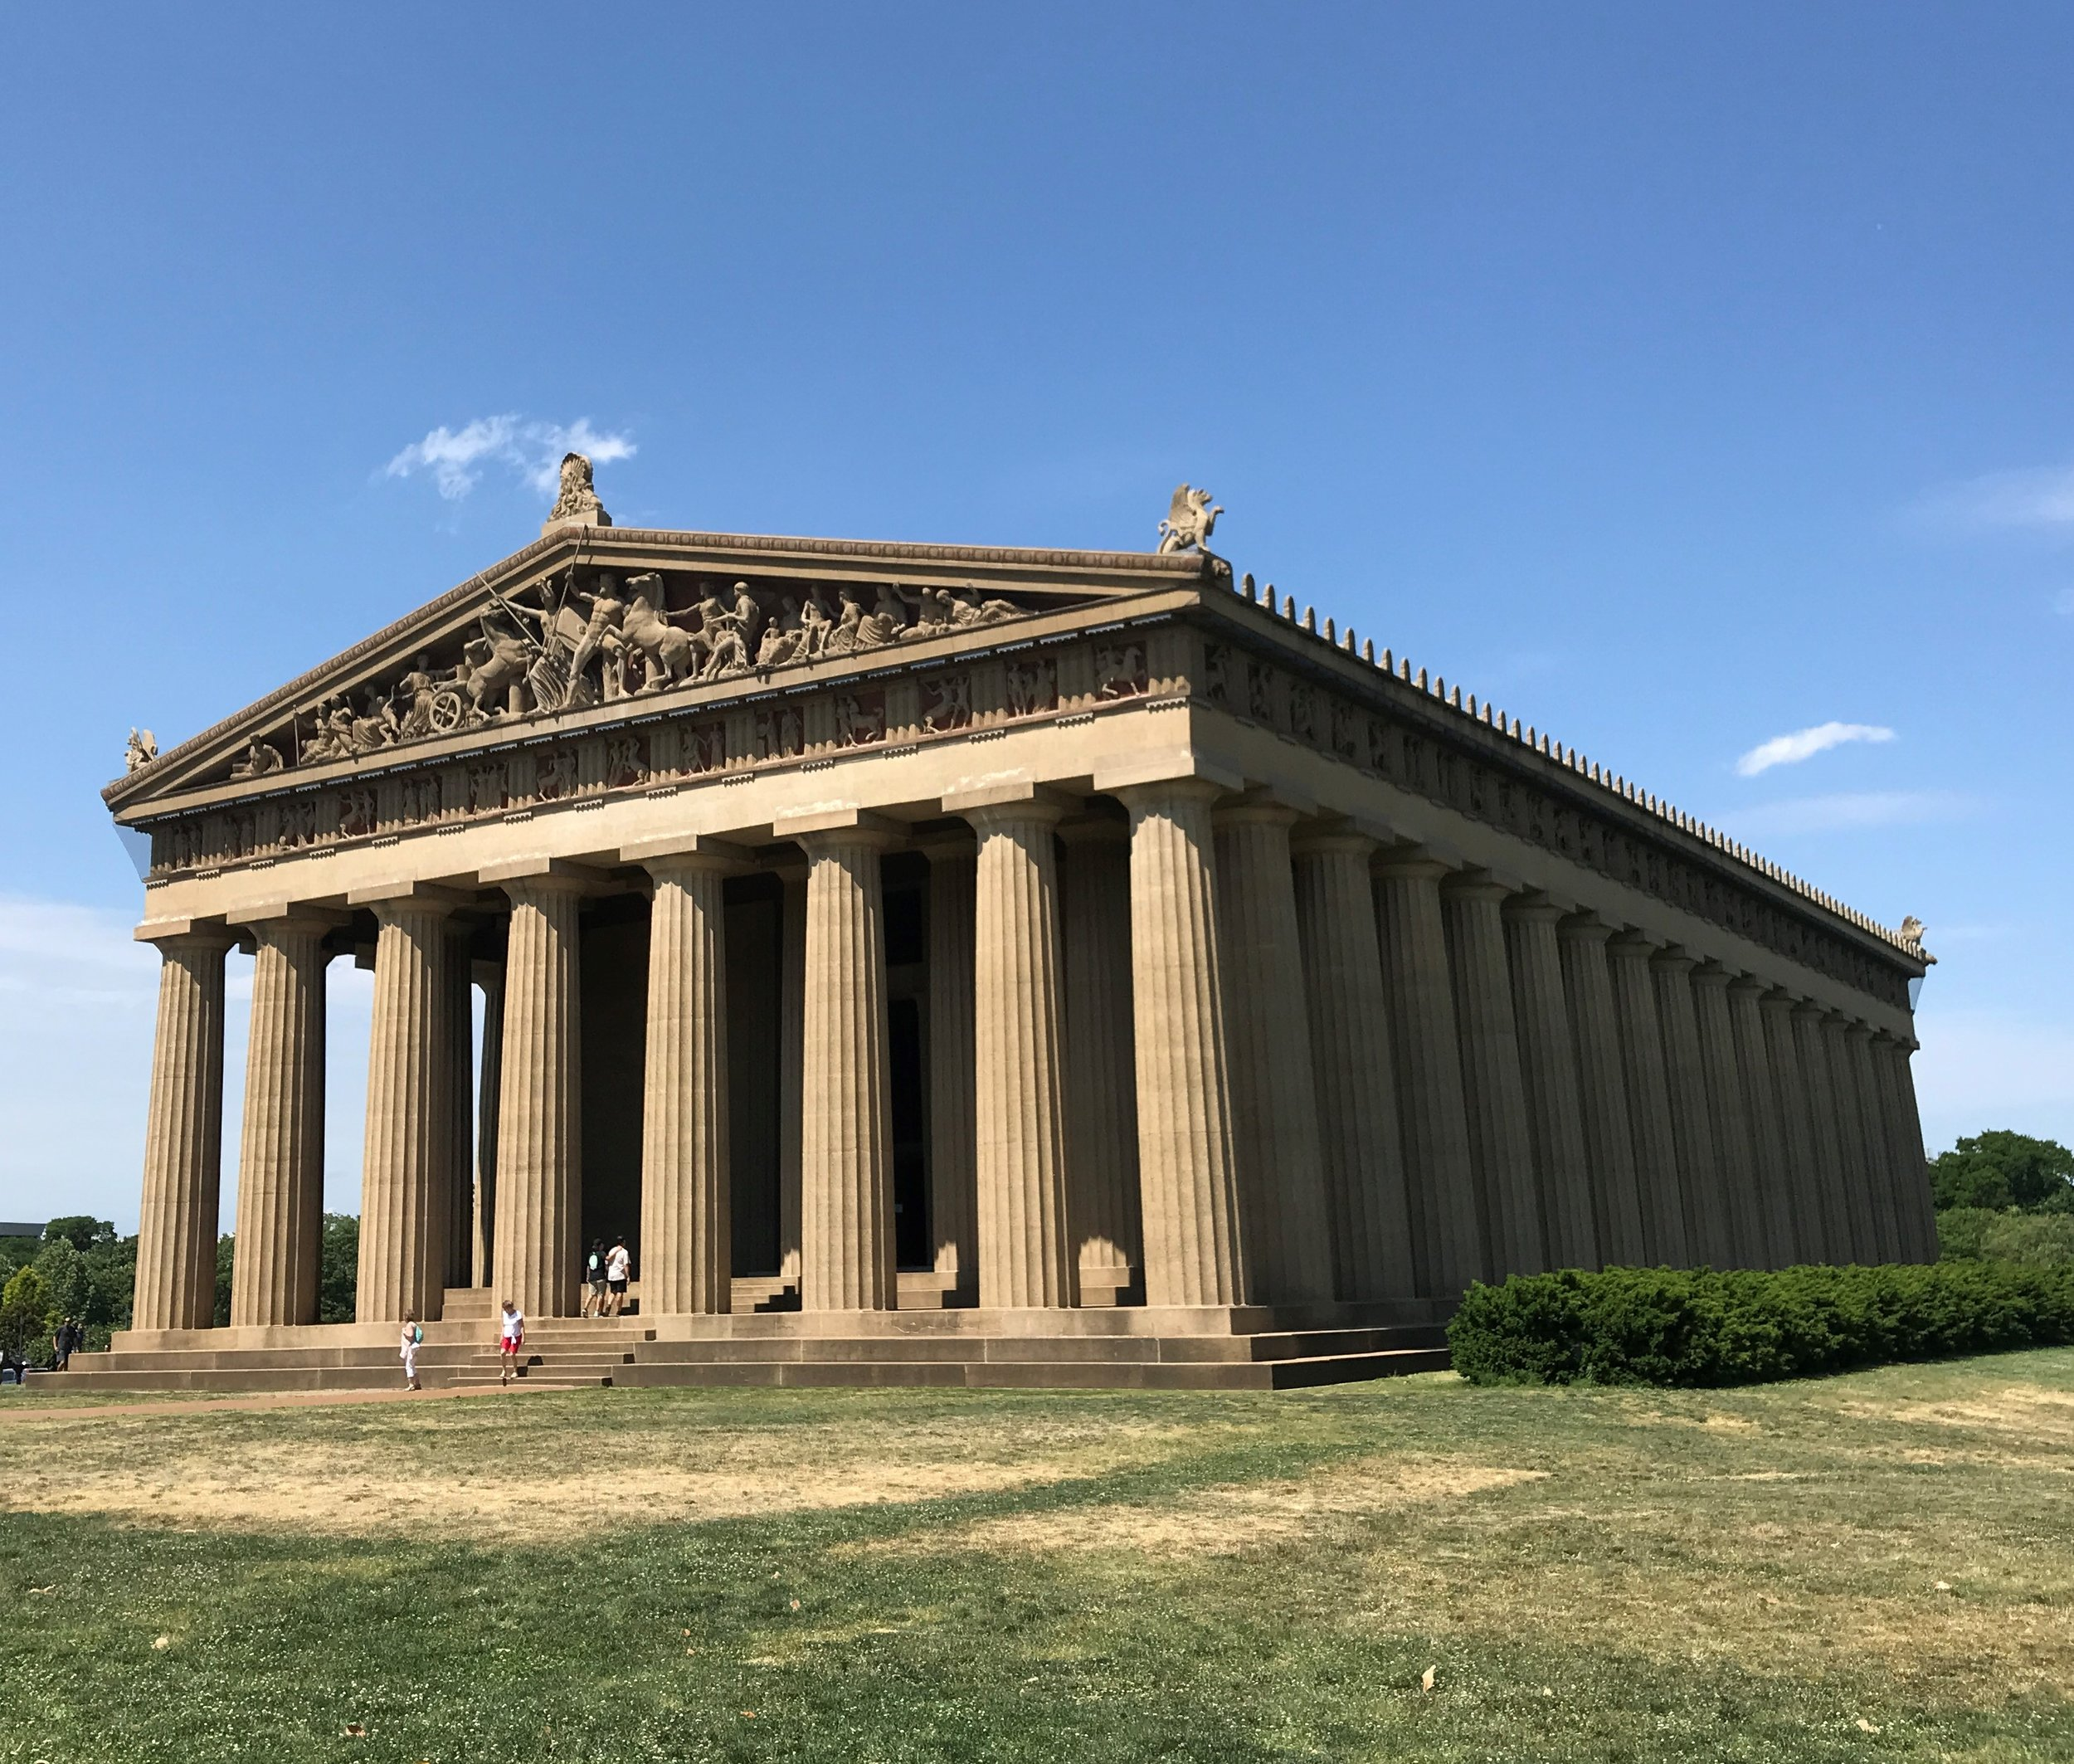 Nashville has its own Parthenon constructed over 100 yrs ago. It was built for Tennessee's 1897 Centennial Exposition